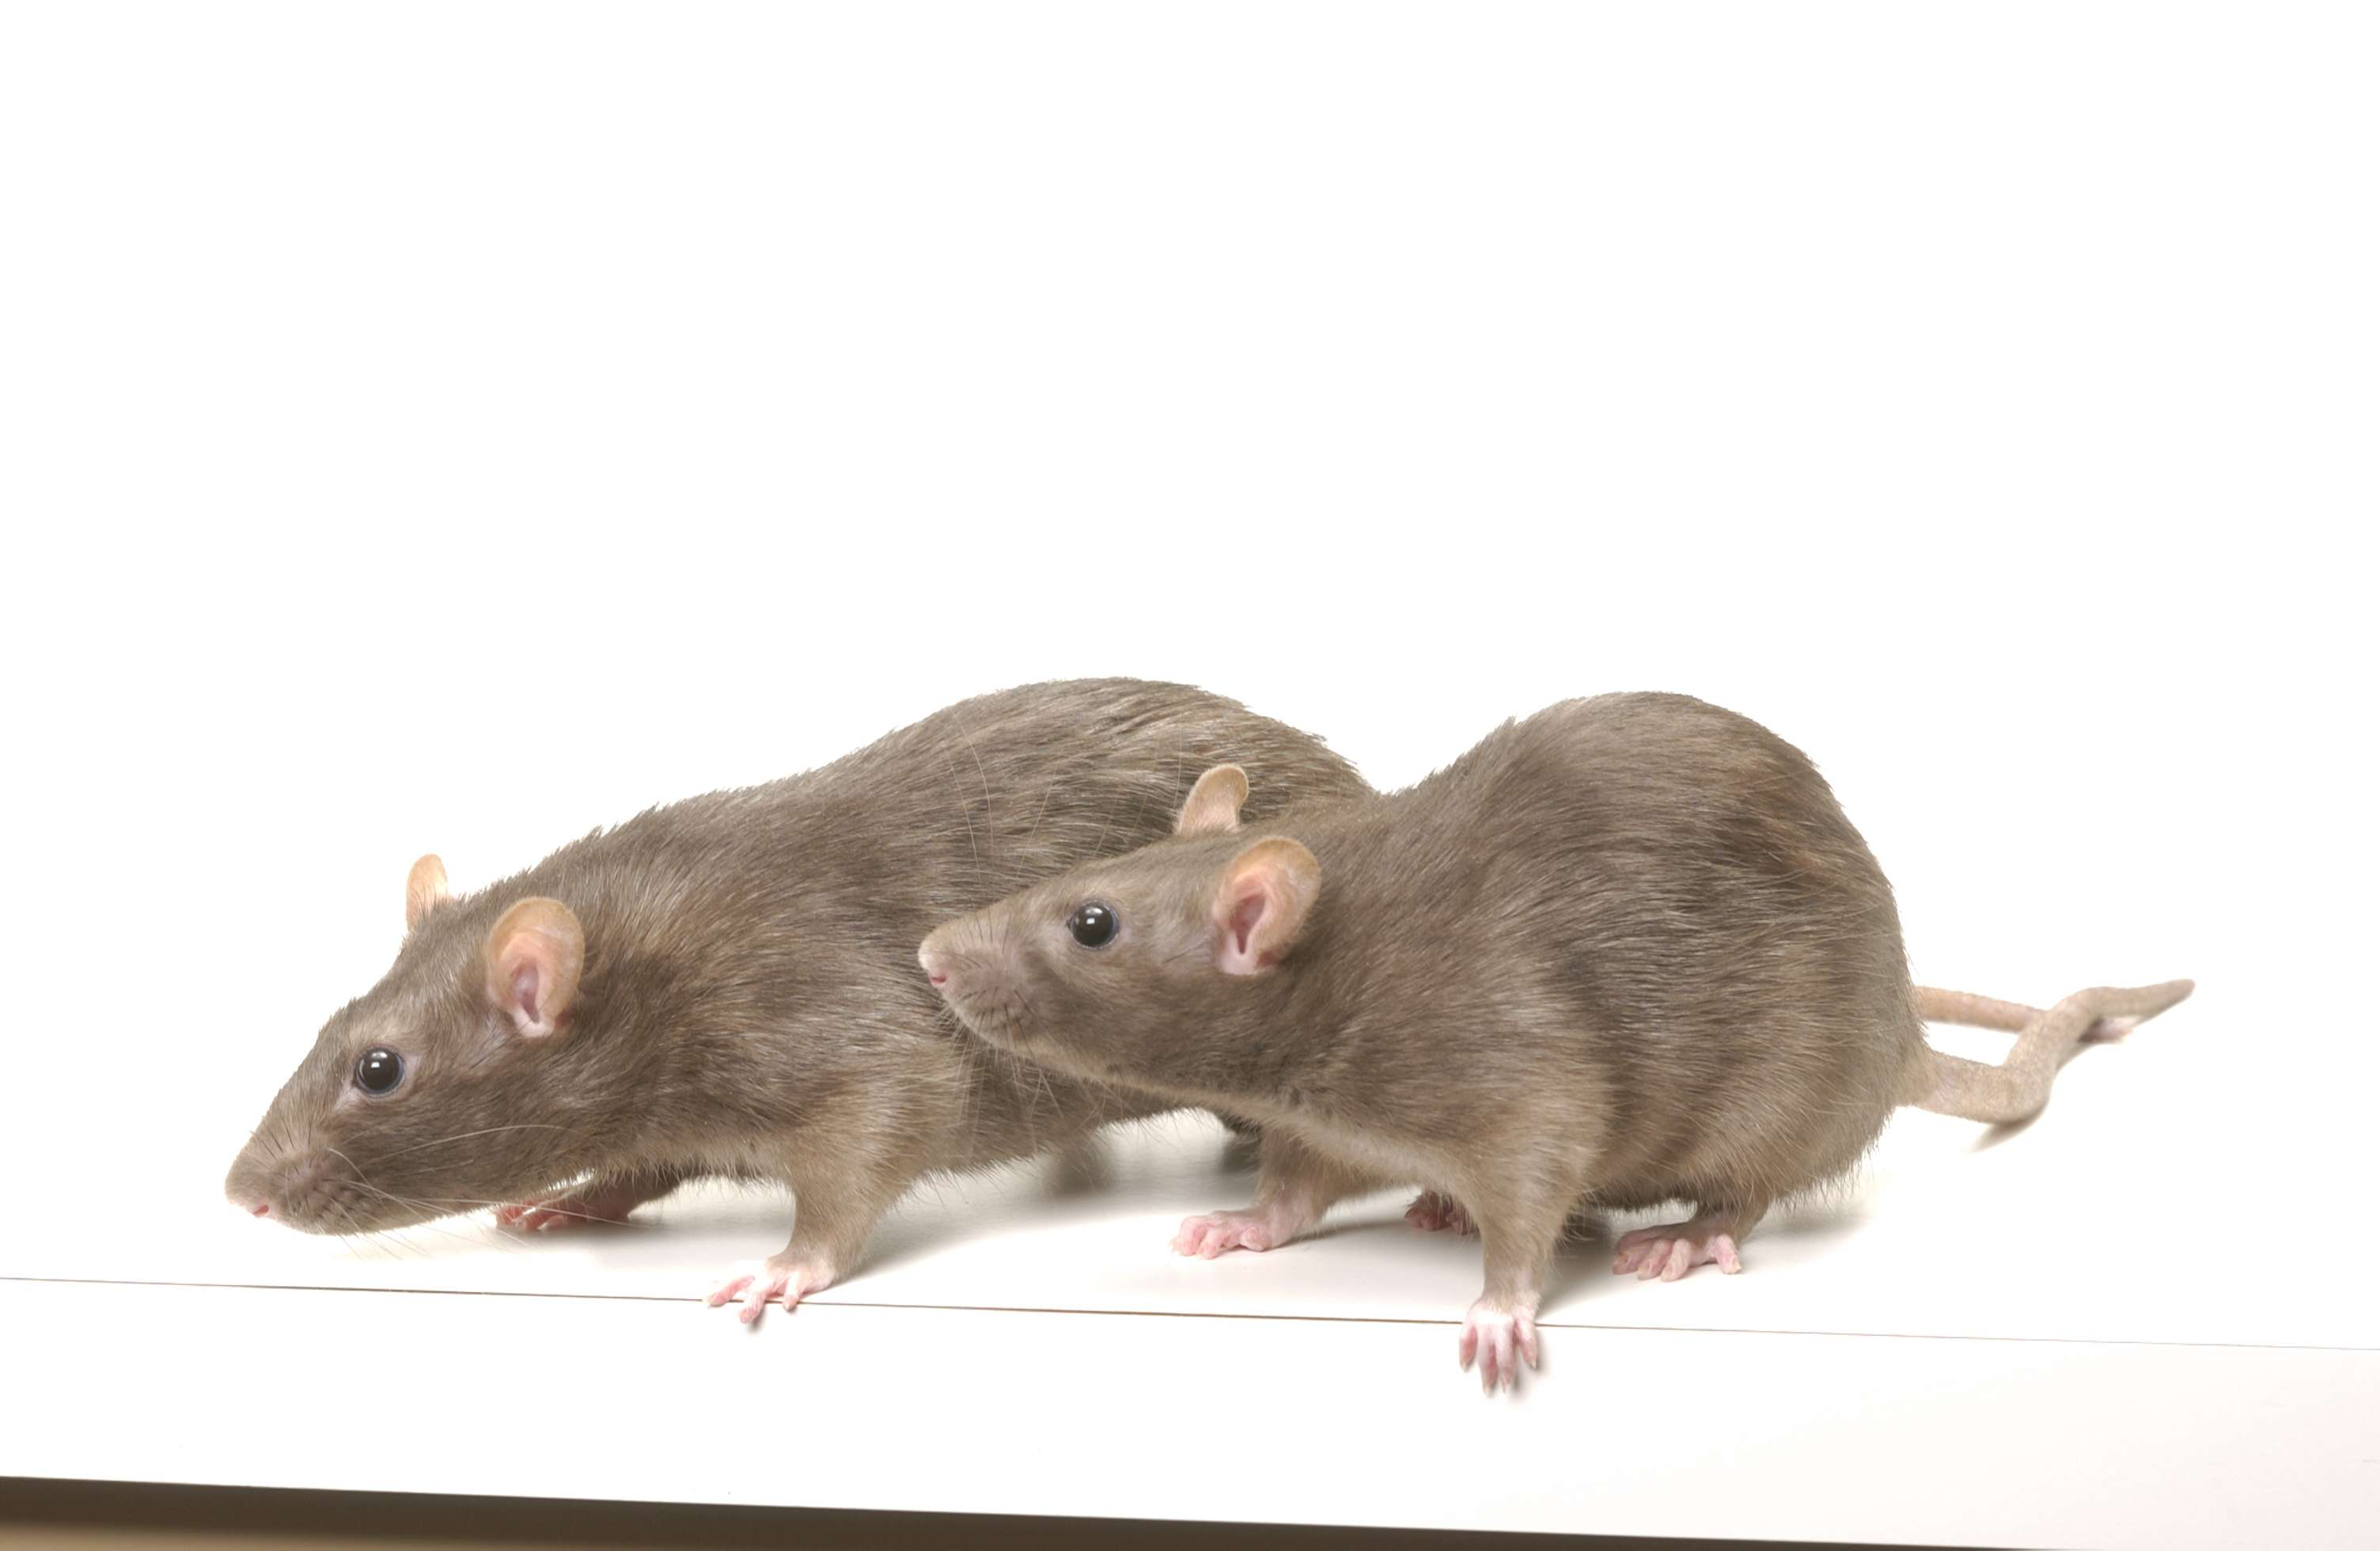 Ratas de laboratorio. Imagen: Bill Branson, National Institute of Health, EEUU